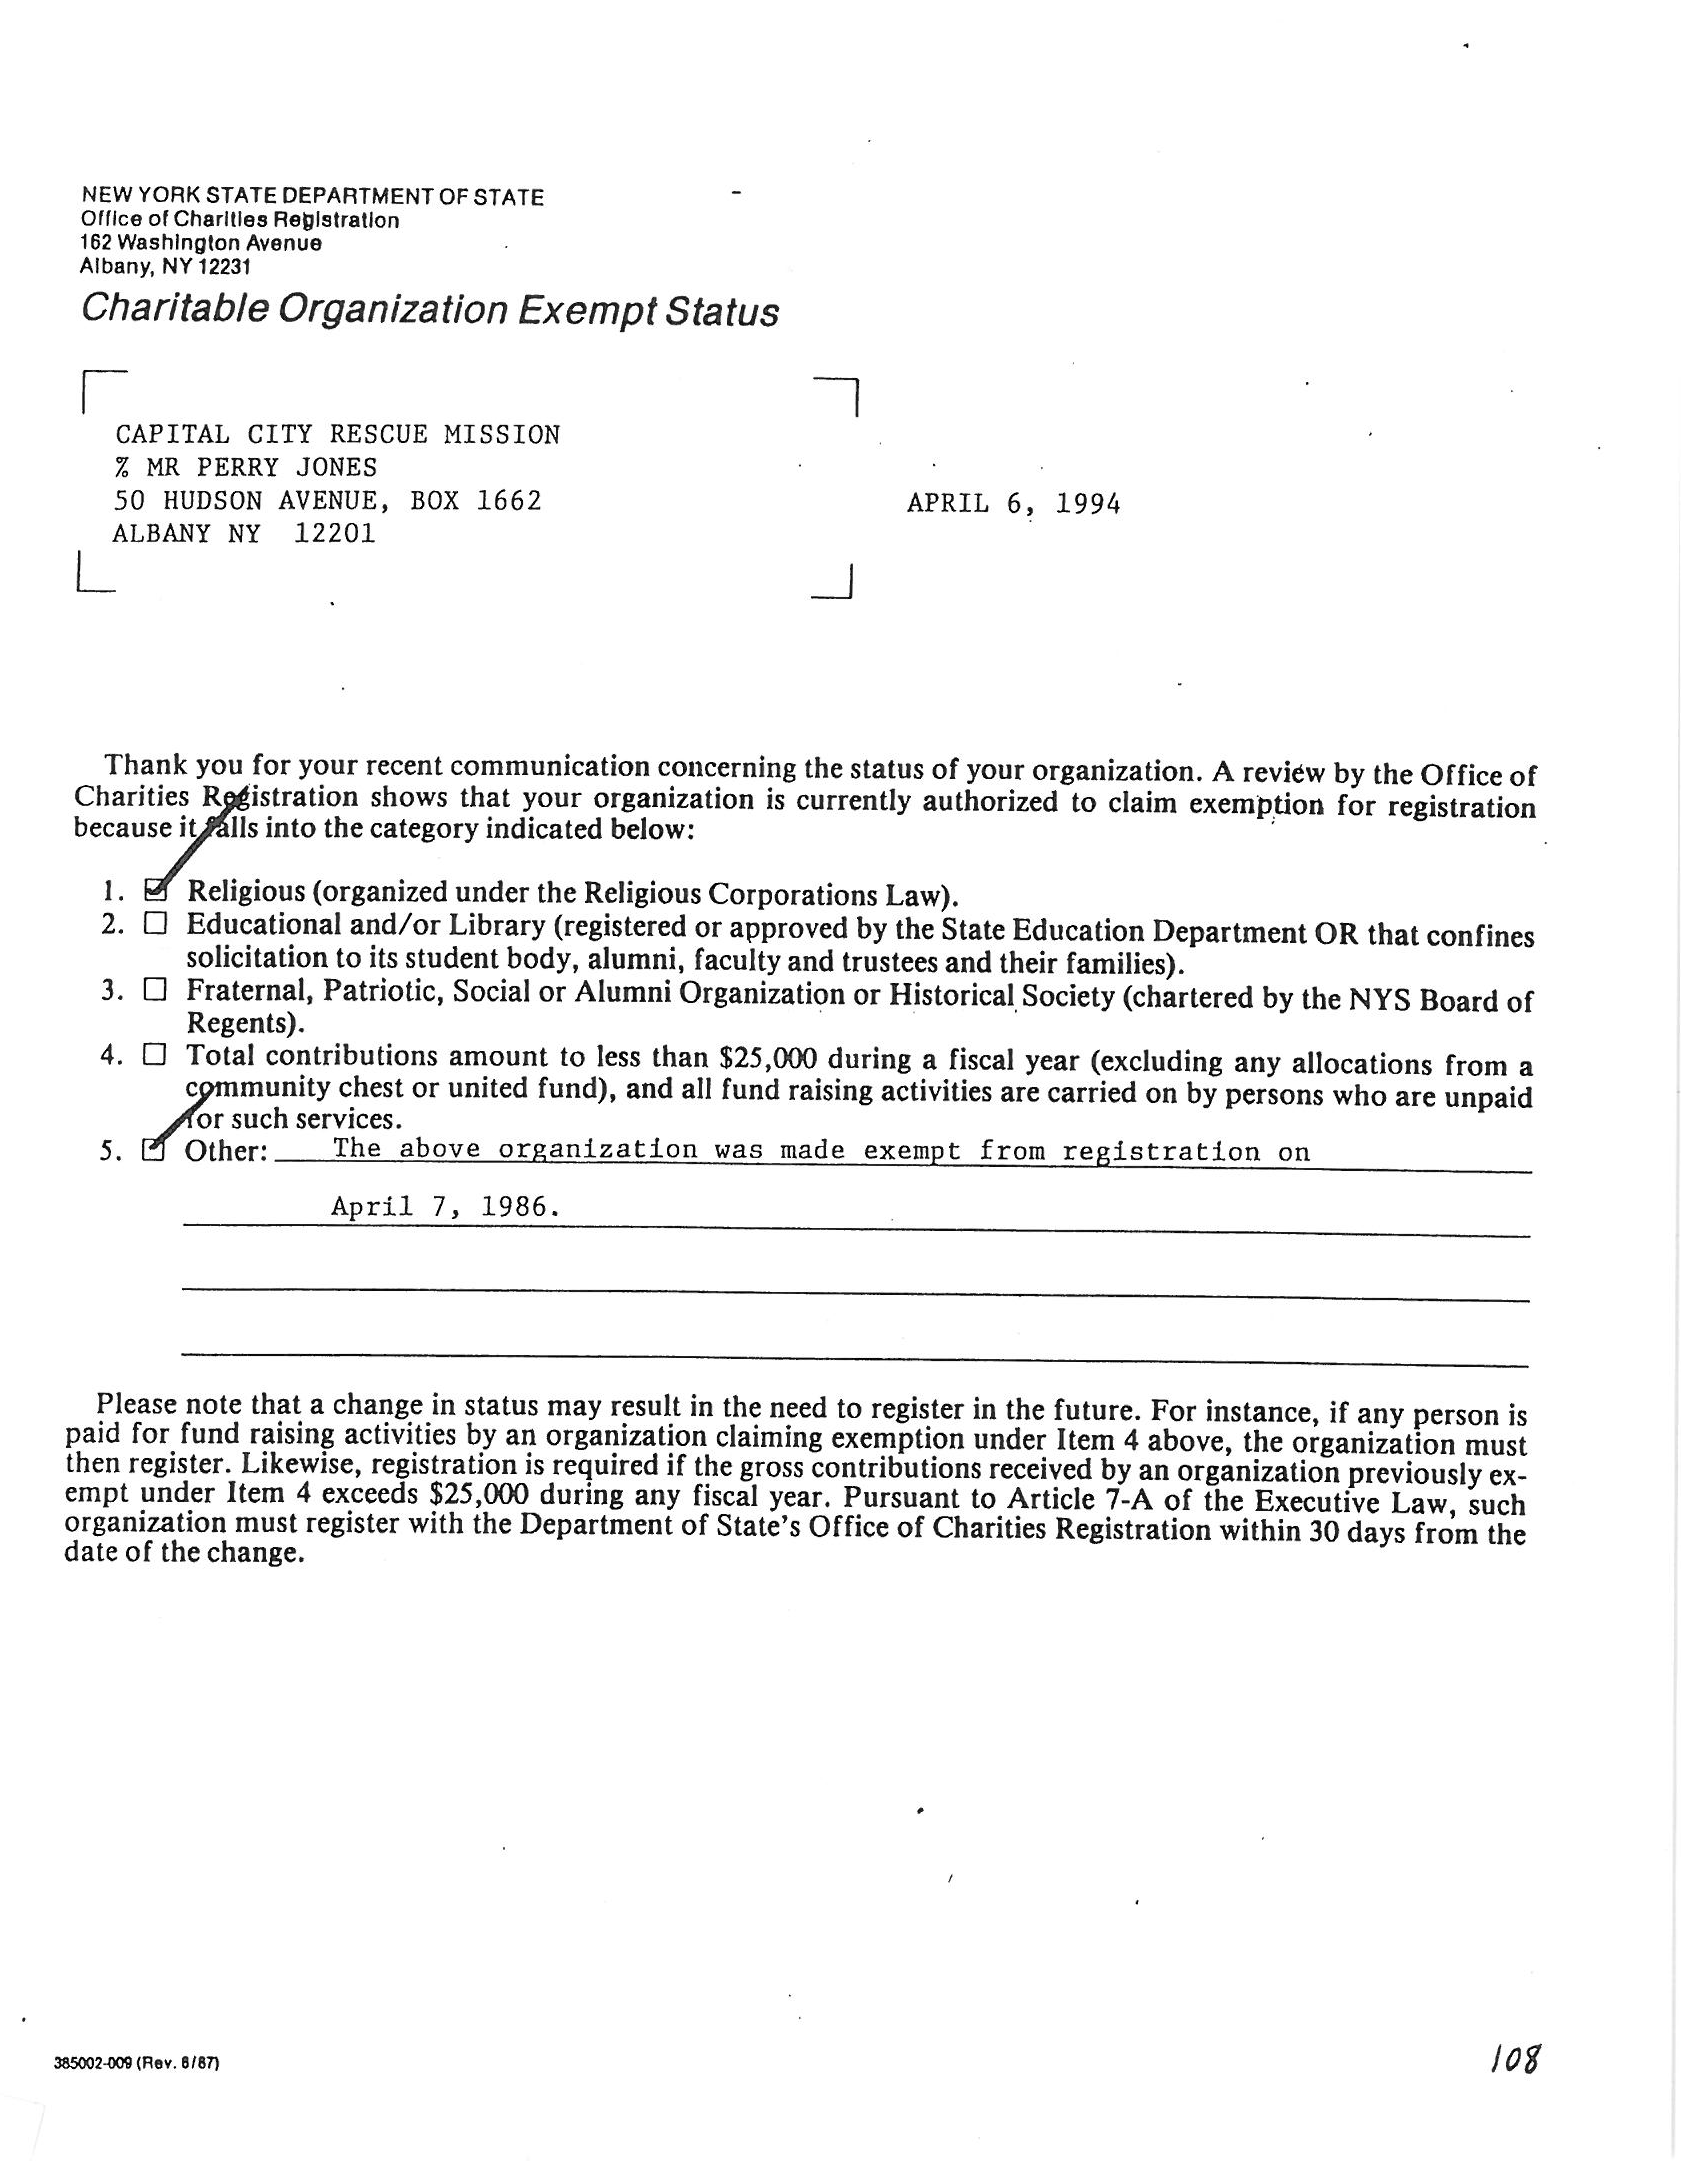 Charitable org exempt status NY State dept.fw_.png